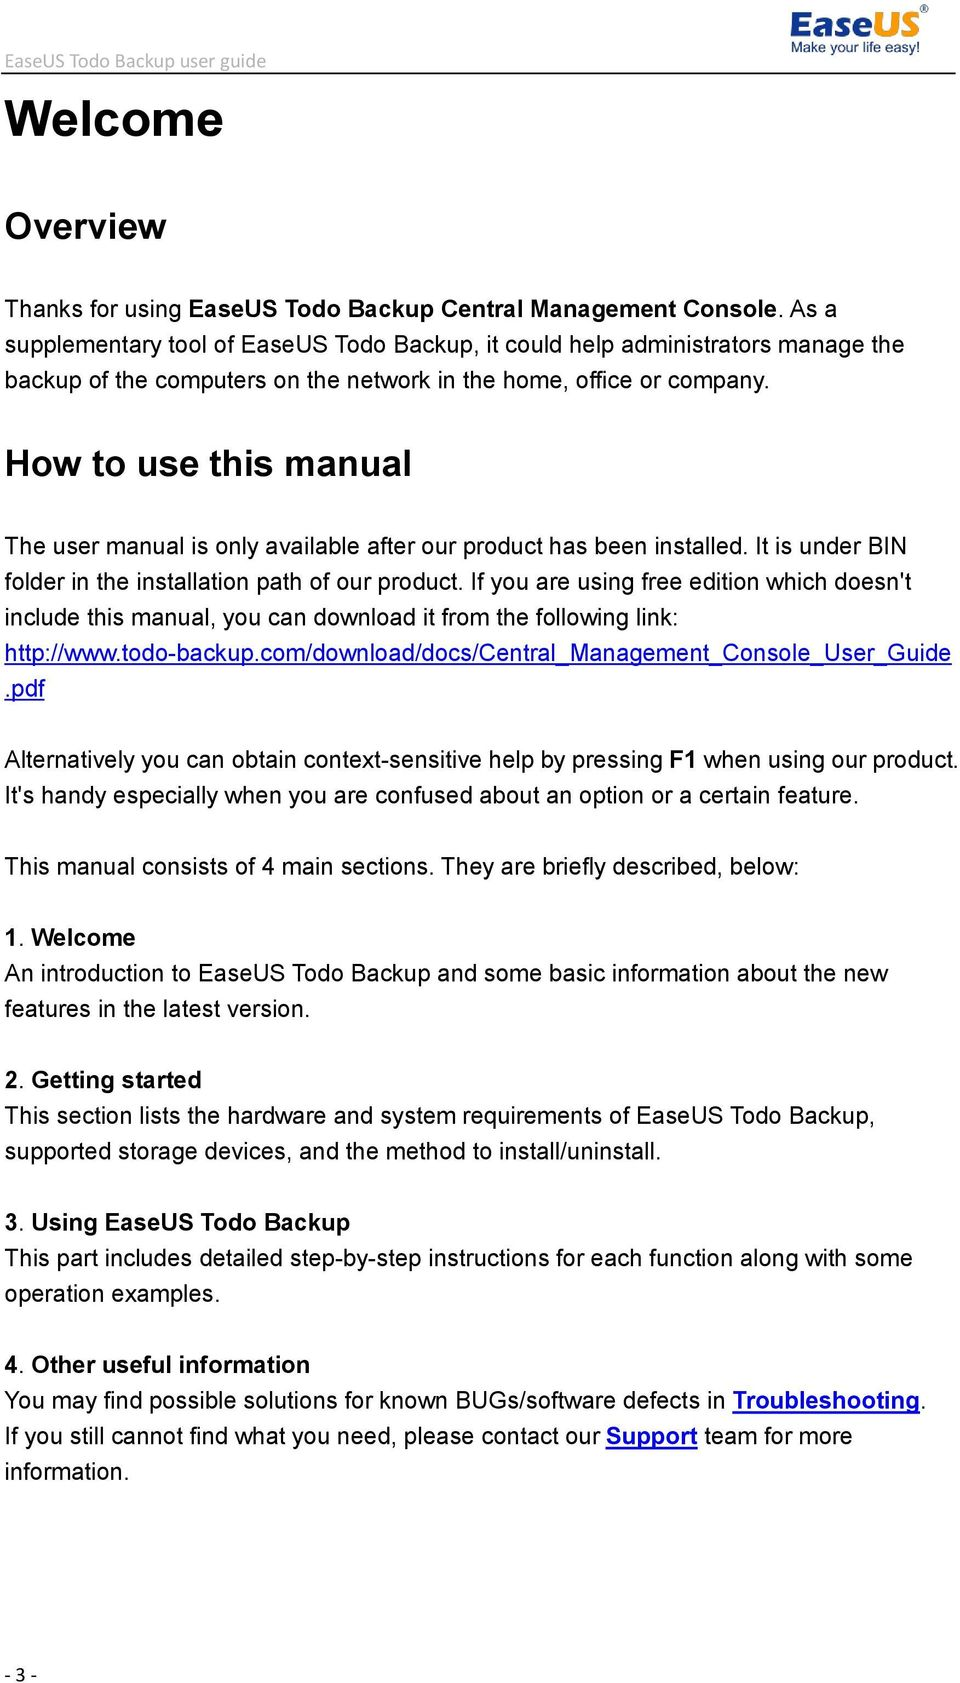 How to use this manual The user manual is only available after our product has been installed. It is under BIN folder in the installation path of our product.